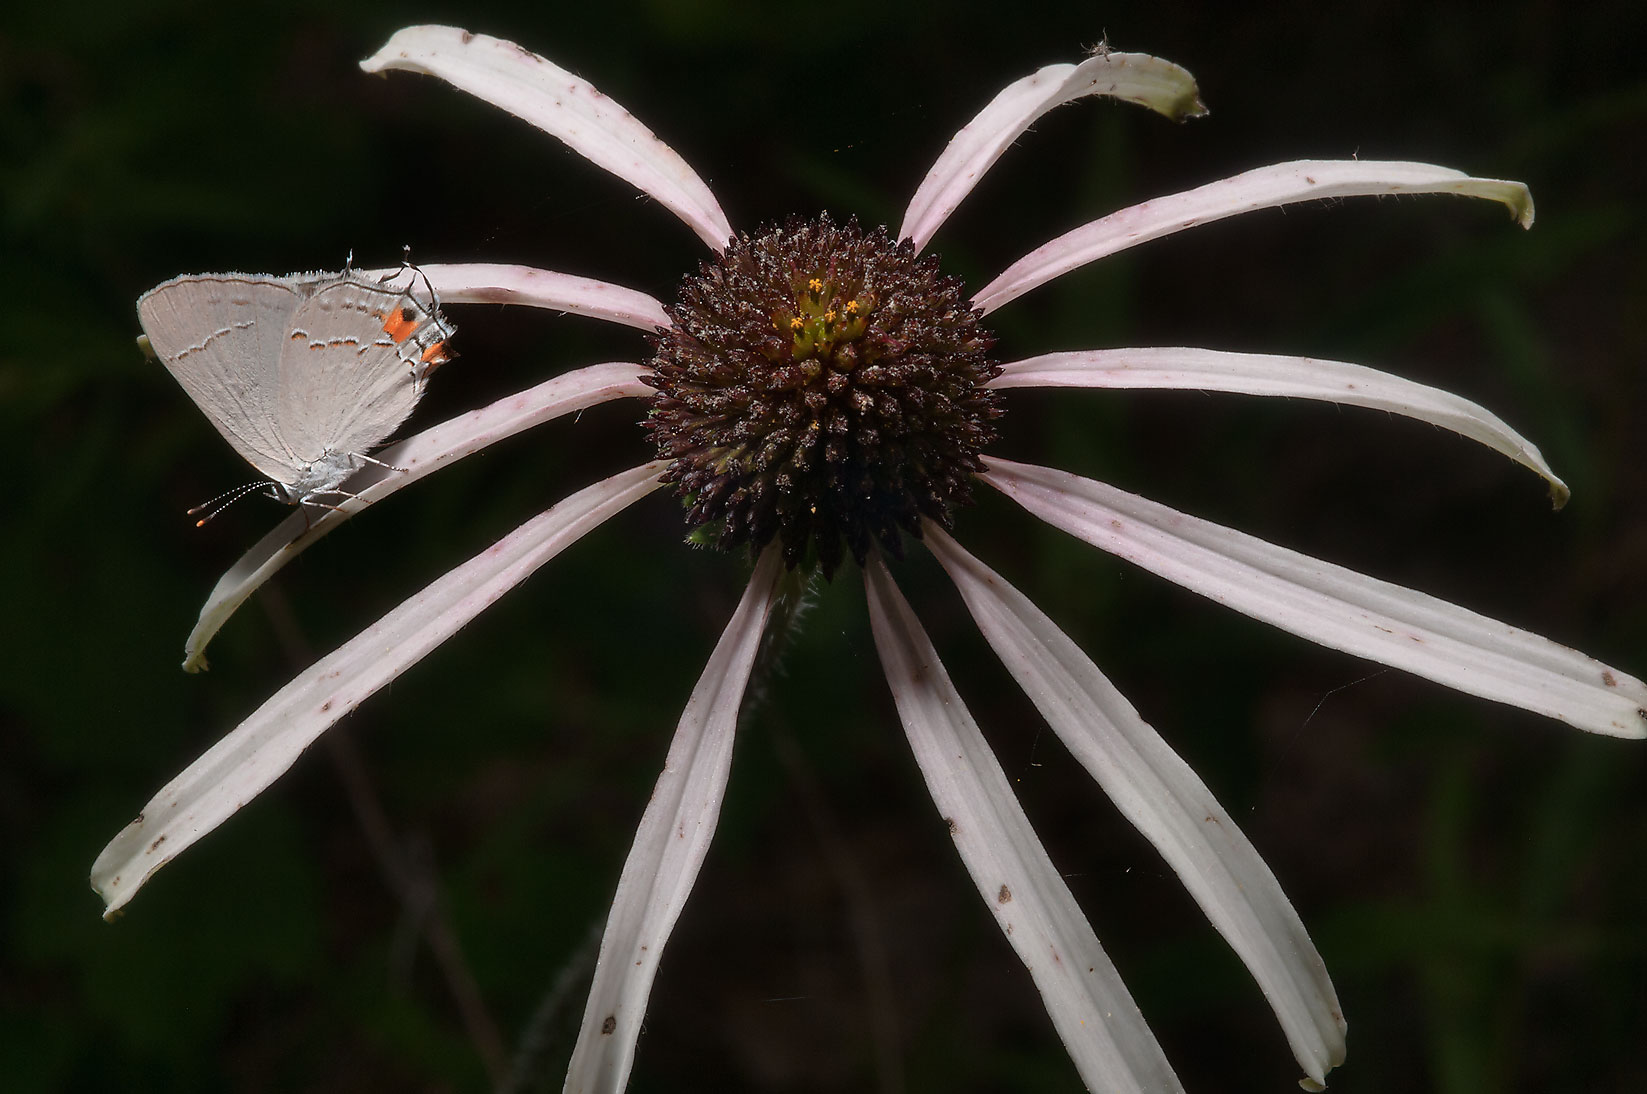 Handeless coneflower (Echinacea sanguinea) with...National Forest. Richards, Texas